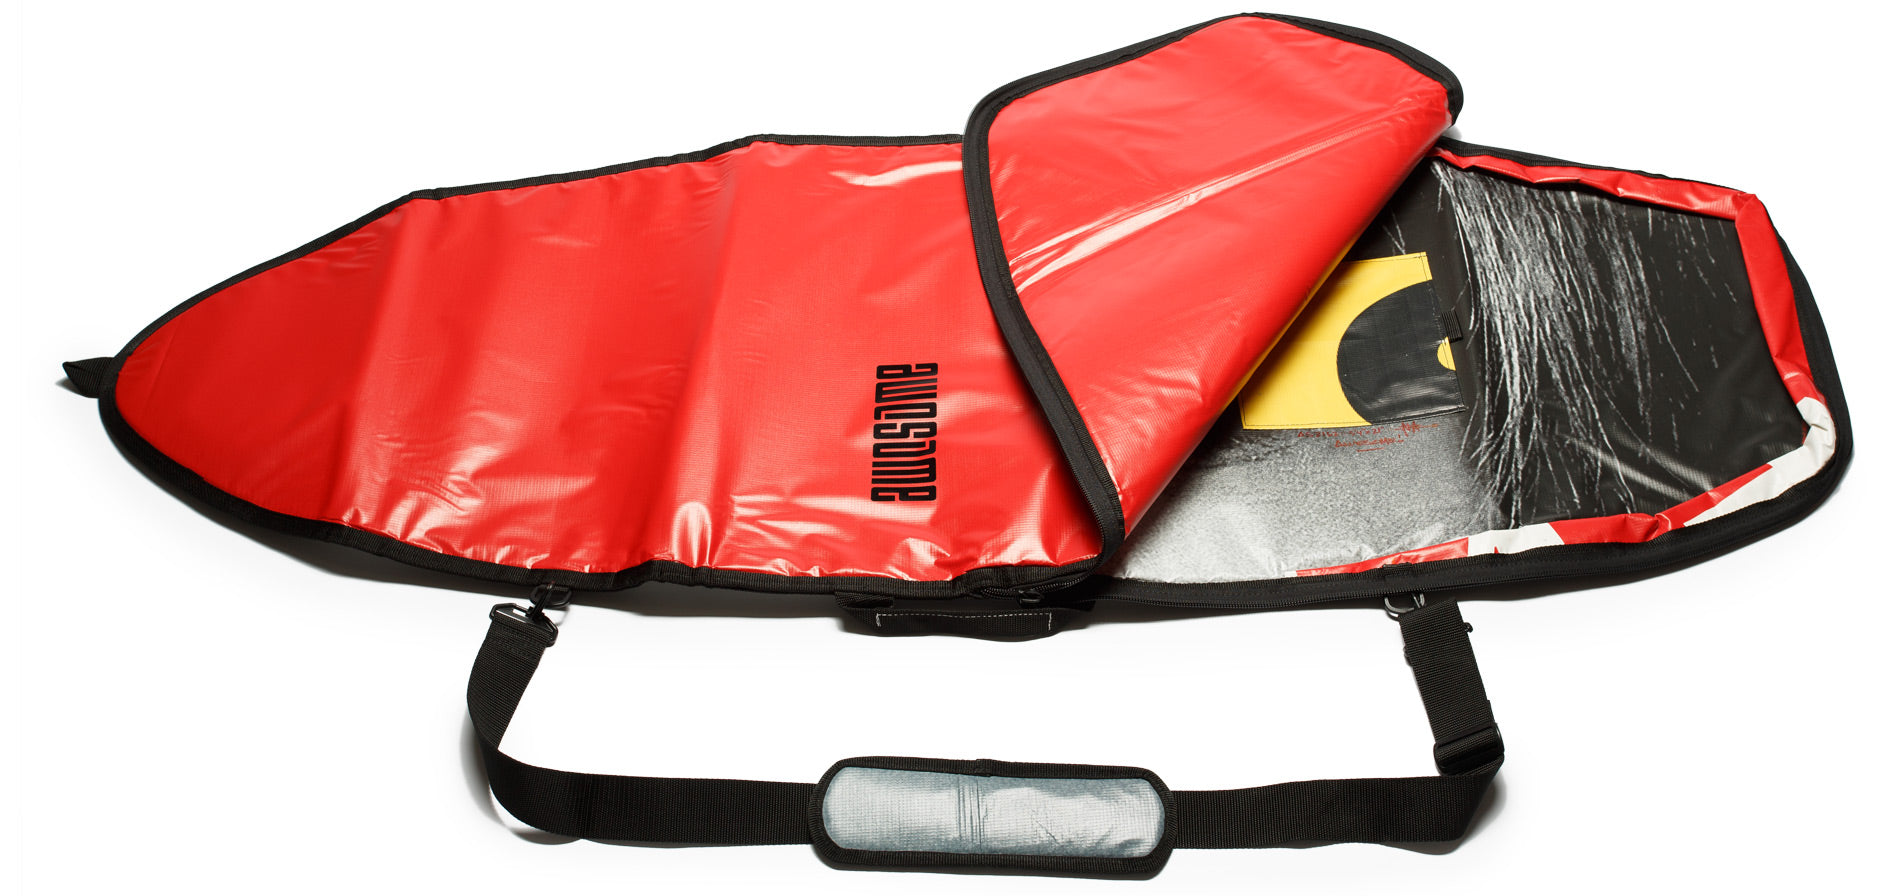 Awesome Surfboards X The Progress Project Boardbags